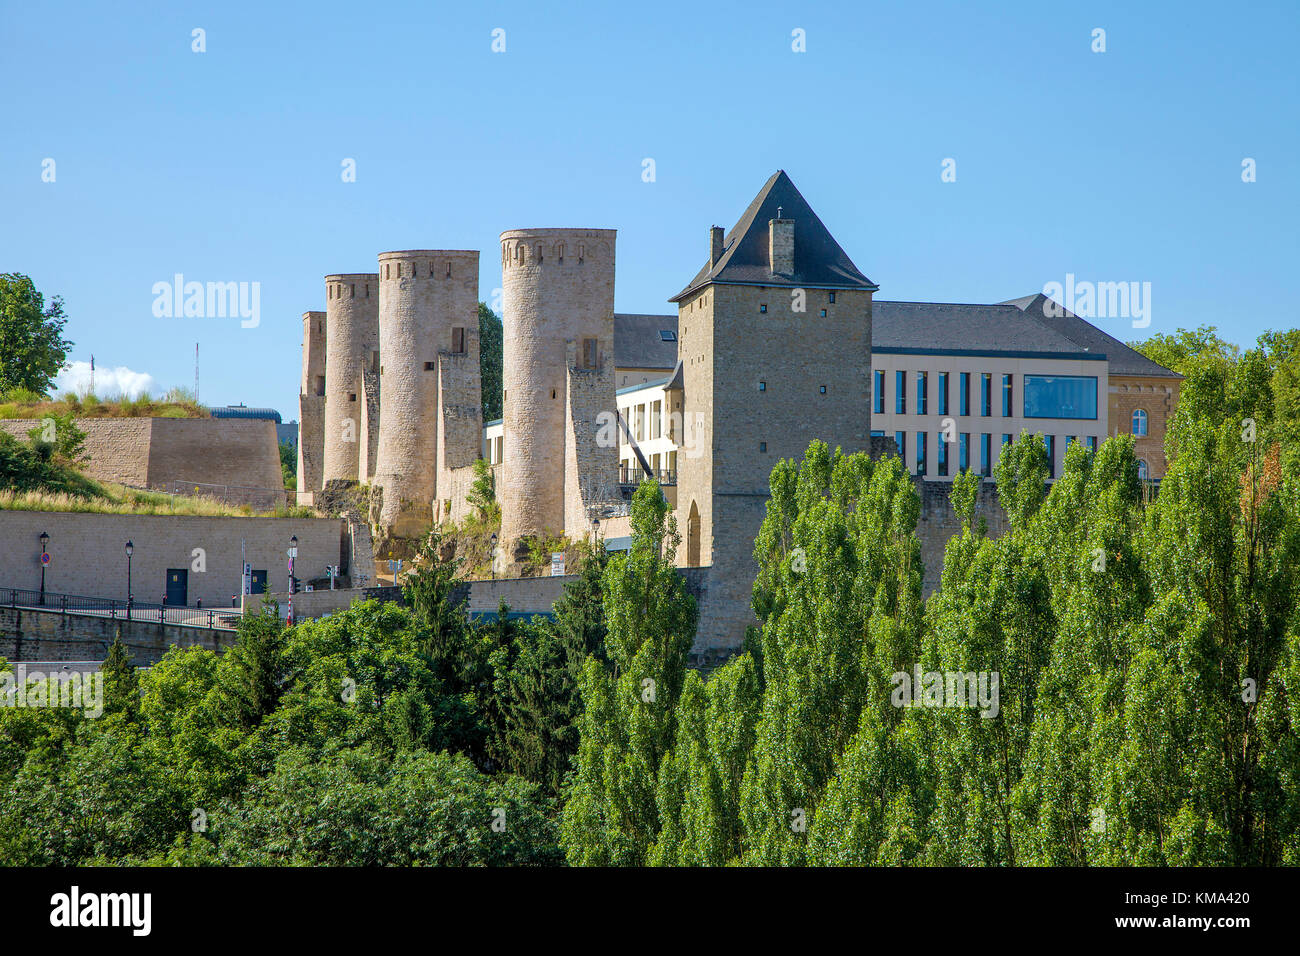 Towers a the Wenzels wall, old town of  Luxembourg-city, Luxembourg, Europe - Stock Image